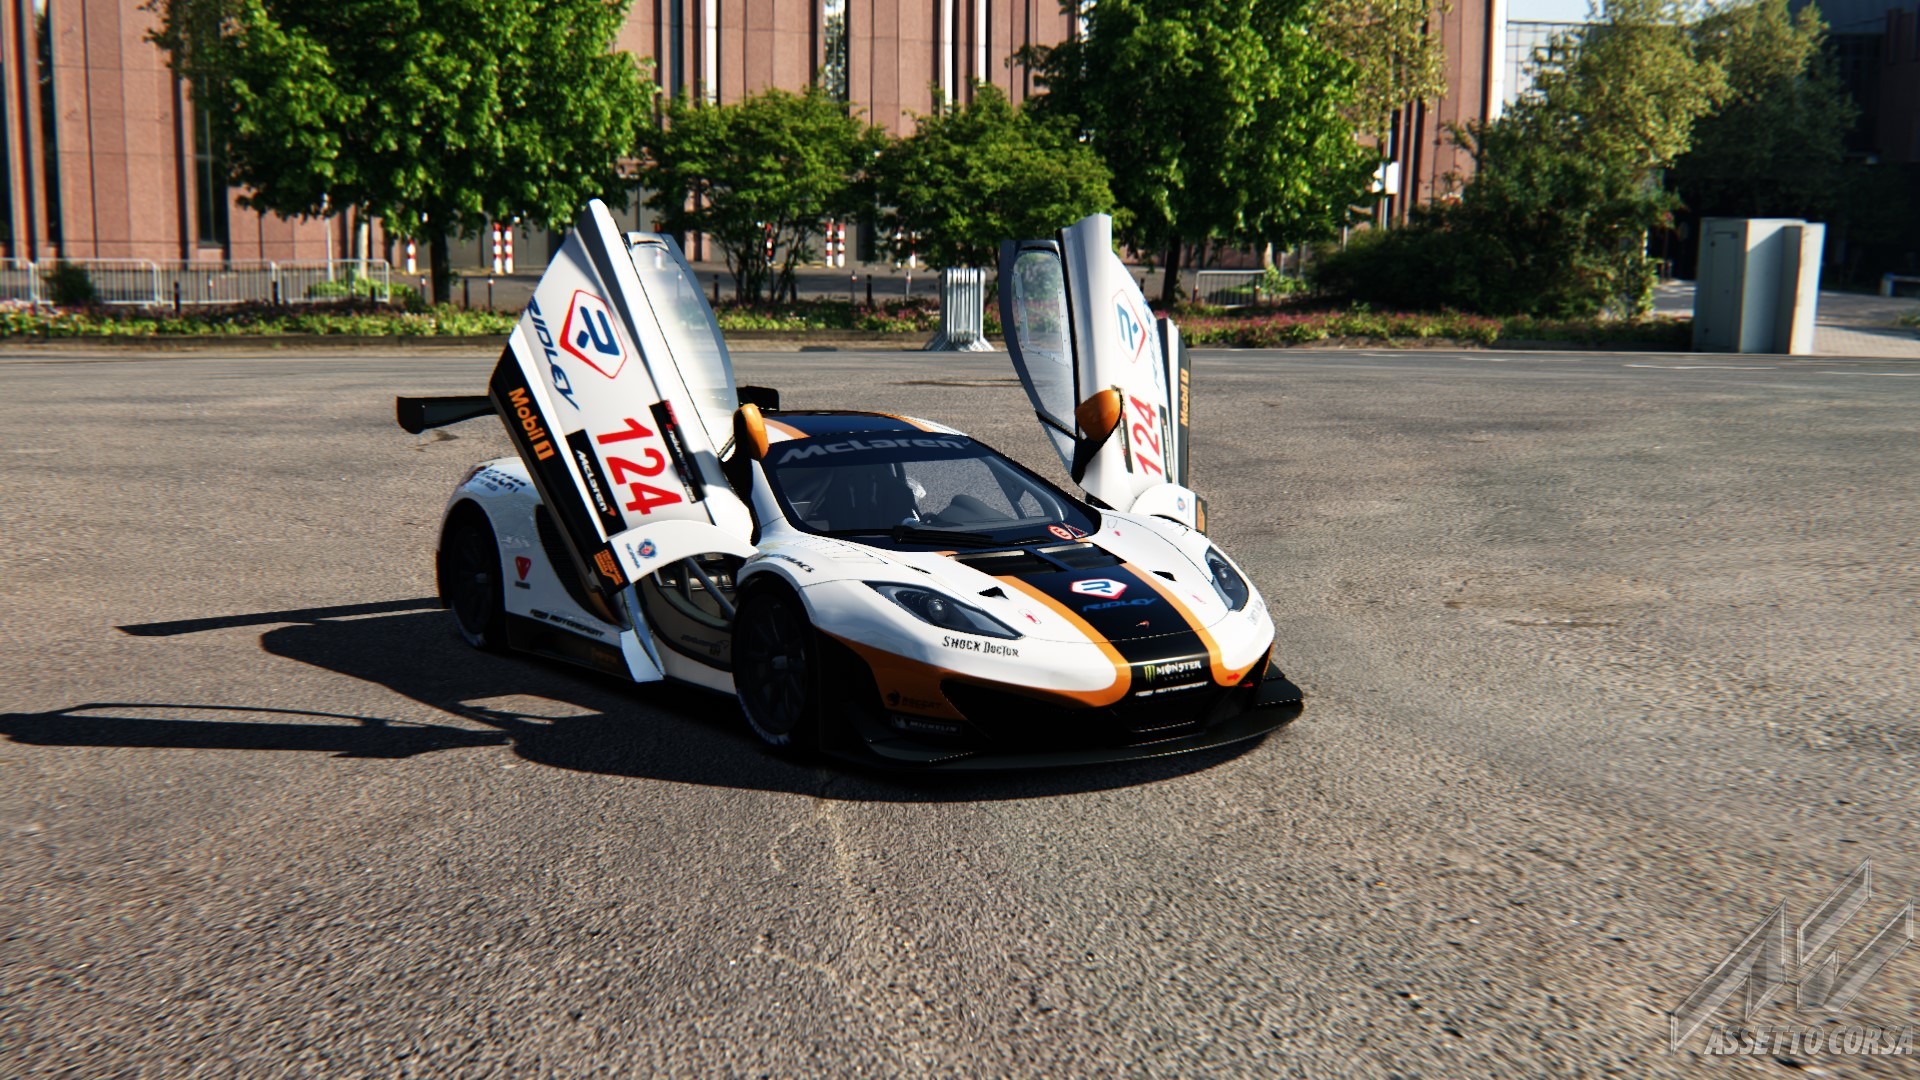 Showroom_mclaren_mp412c_gt3_8-1-2015-12-8-46.jpg